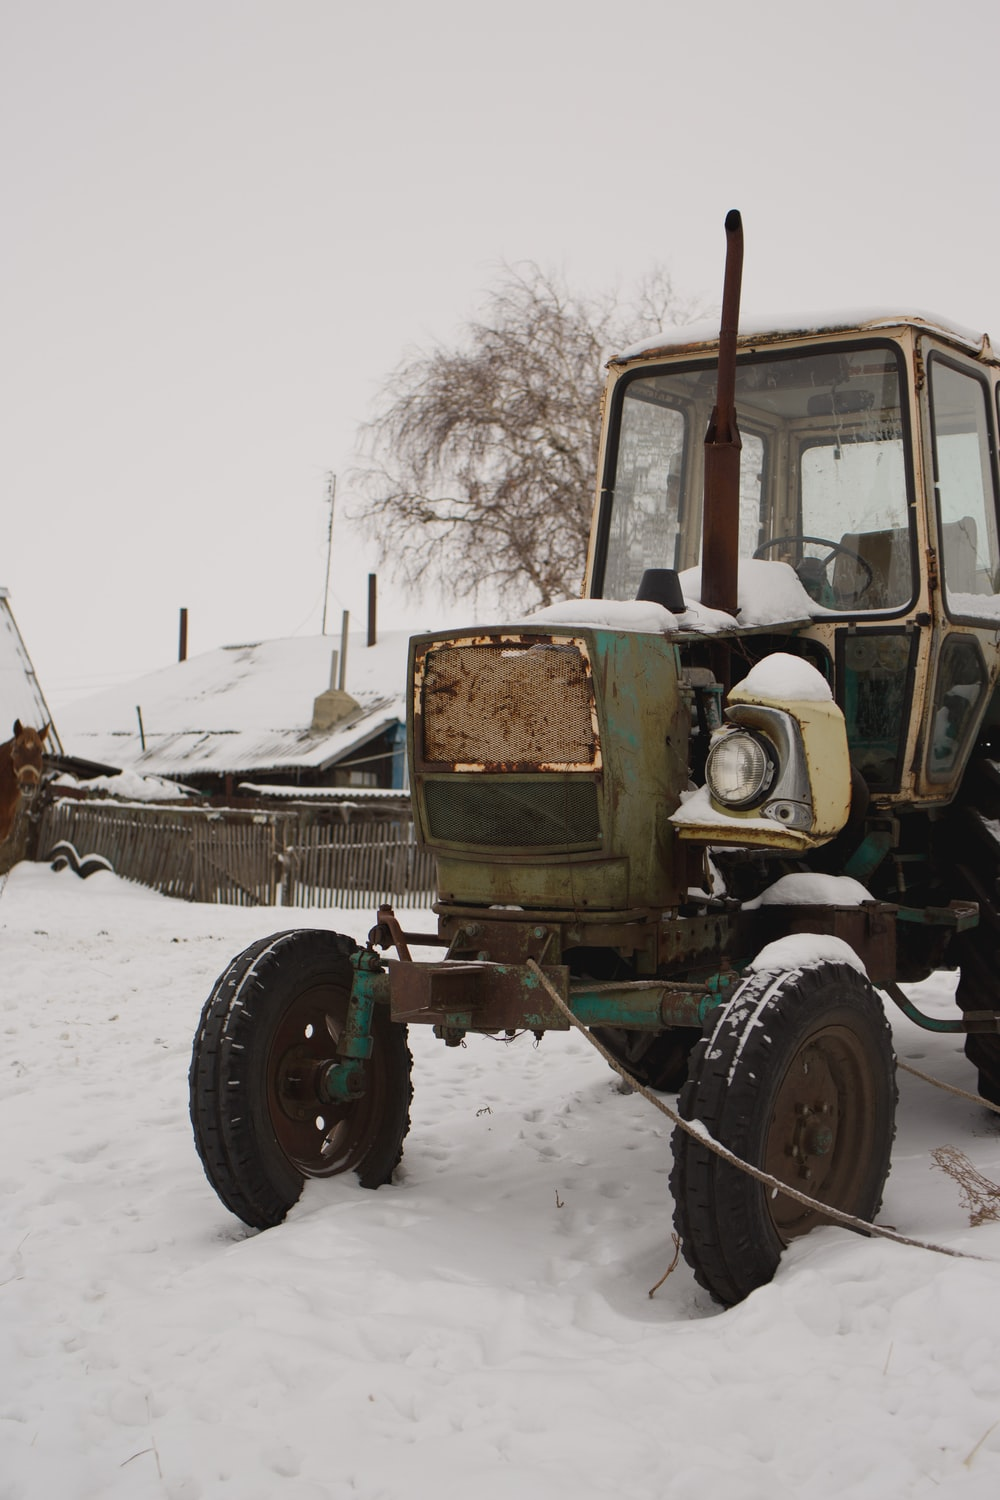 green and brown tractor on snow covered ground during daytime